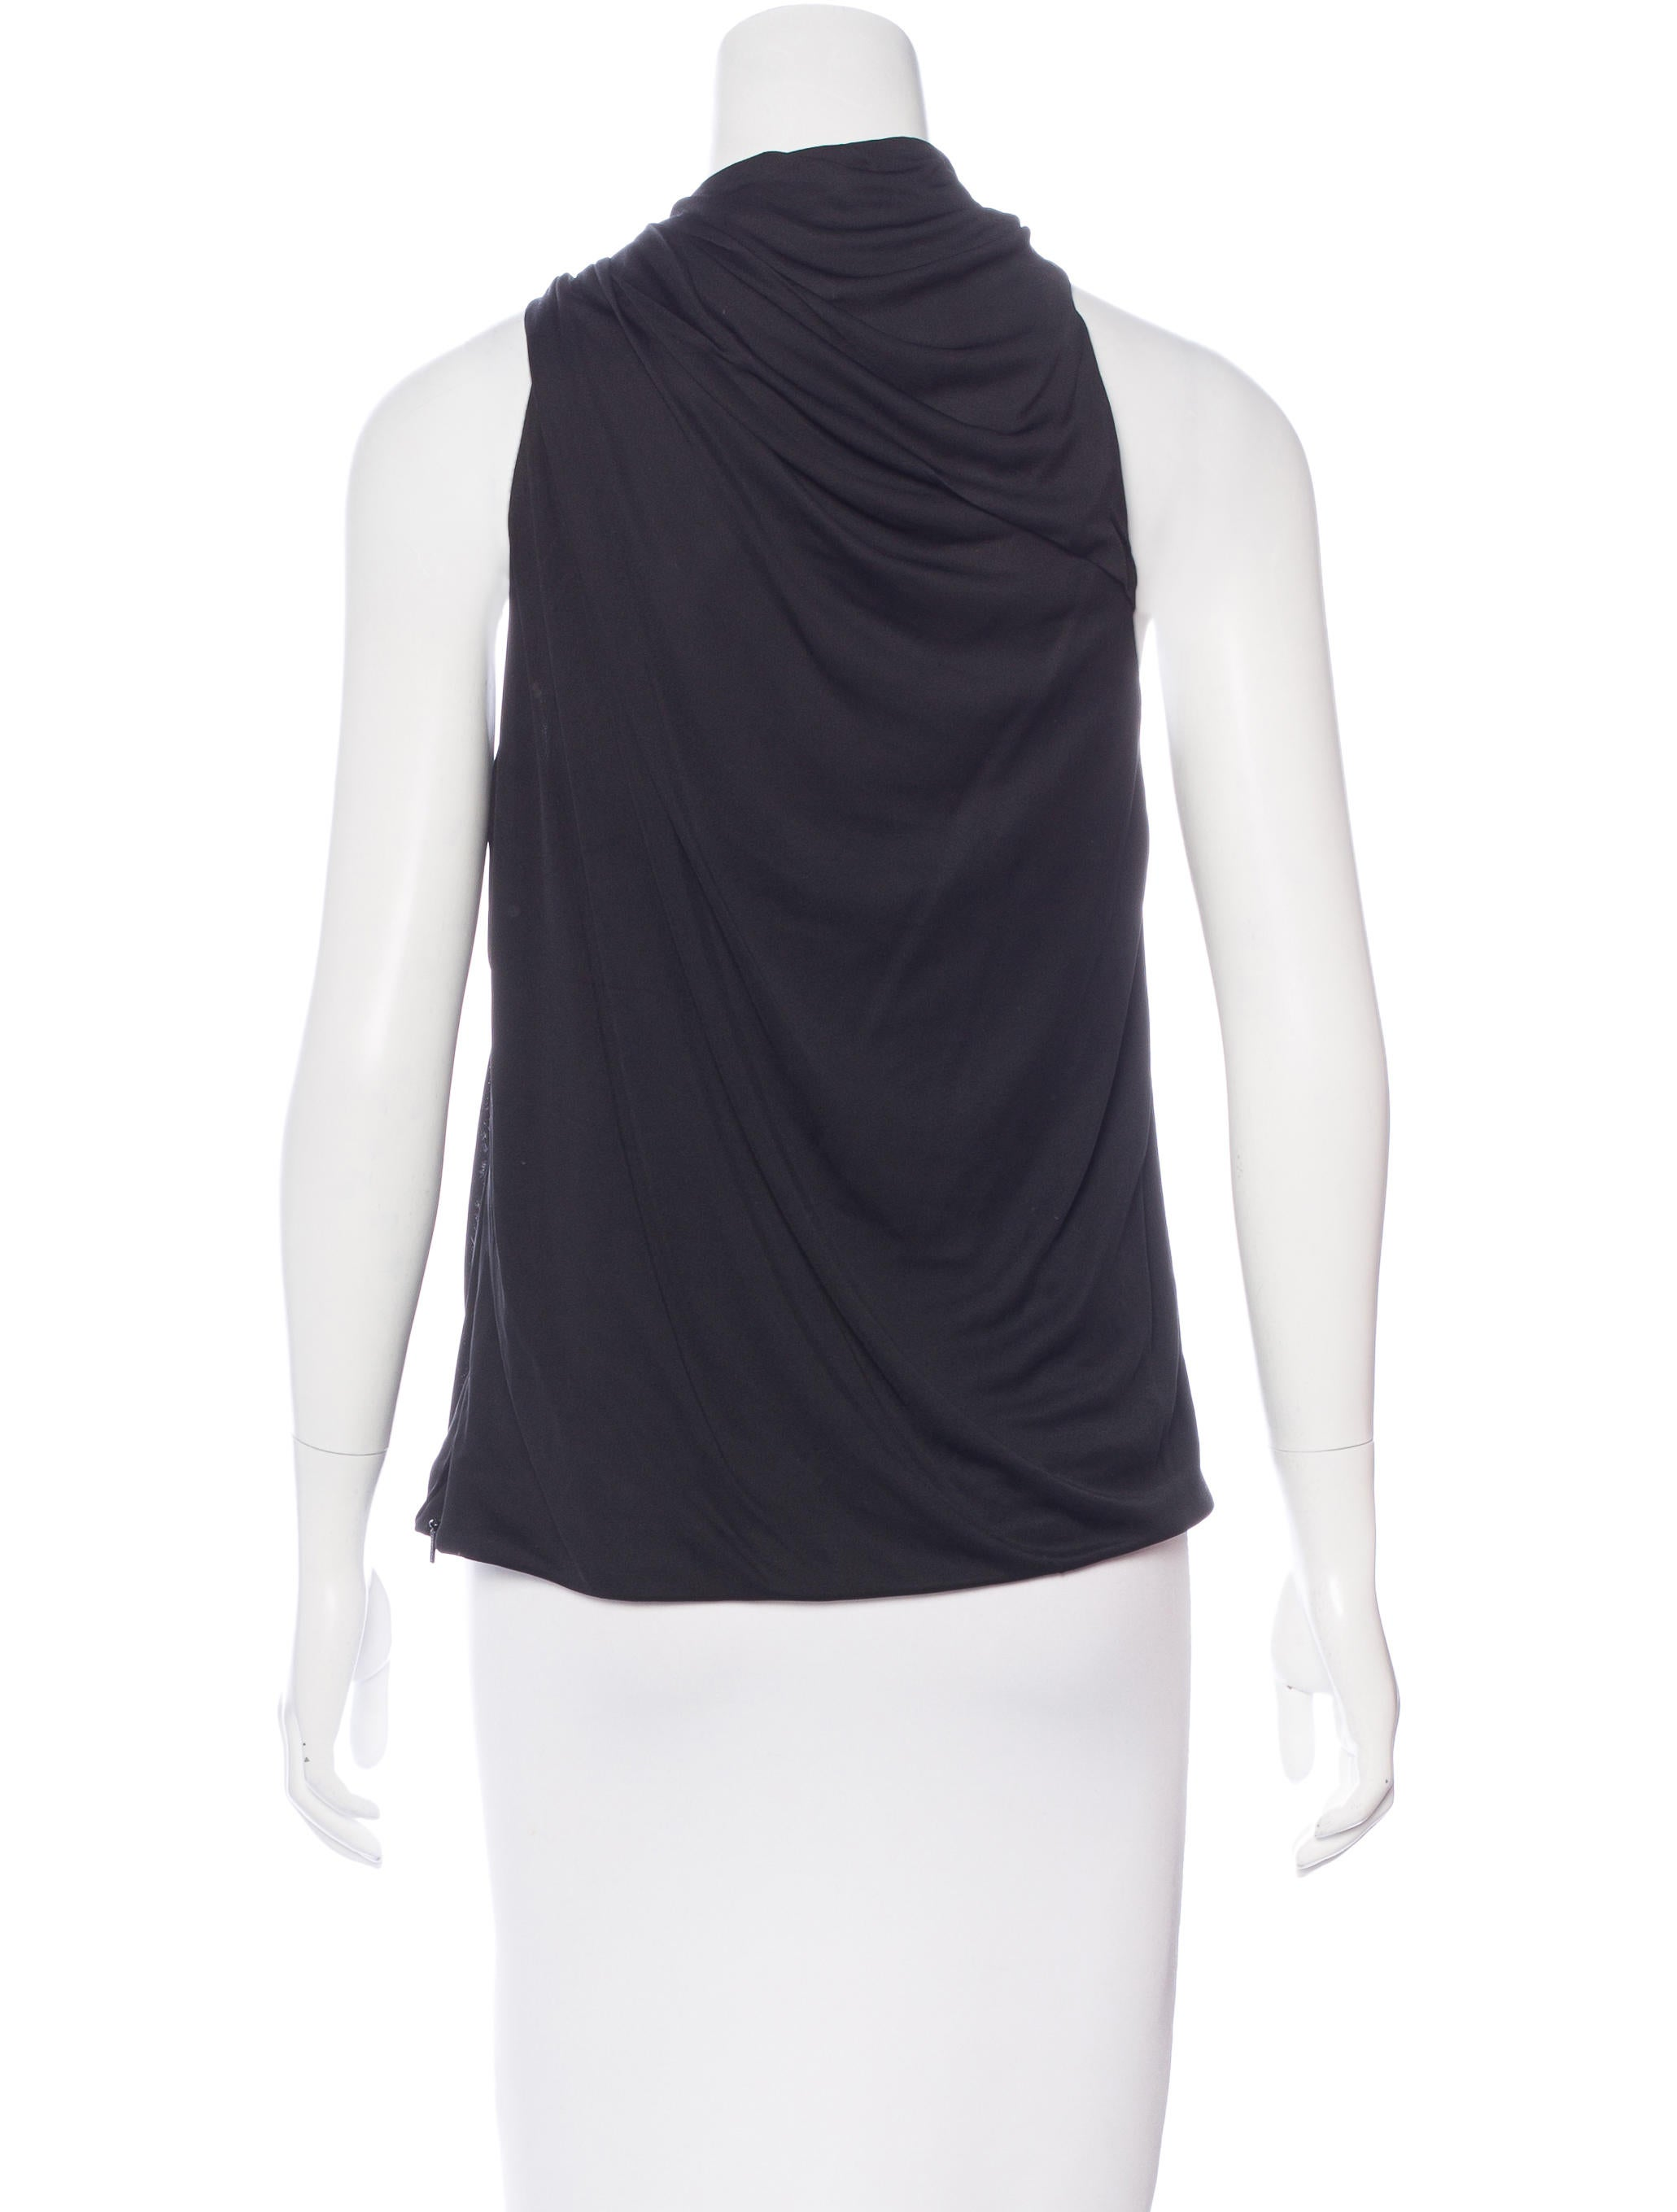 Gucci sleeveless mock neck top clothing guc127785 for Sleeveless mock turtleneck shirts